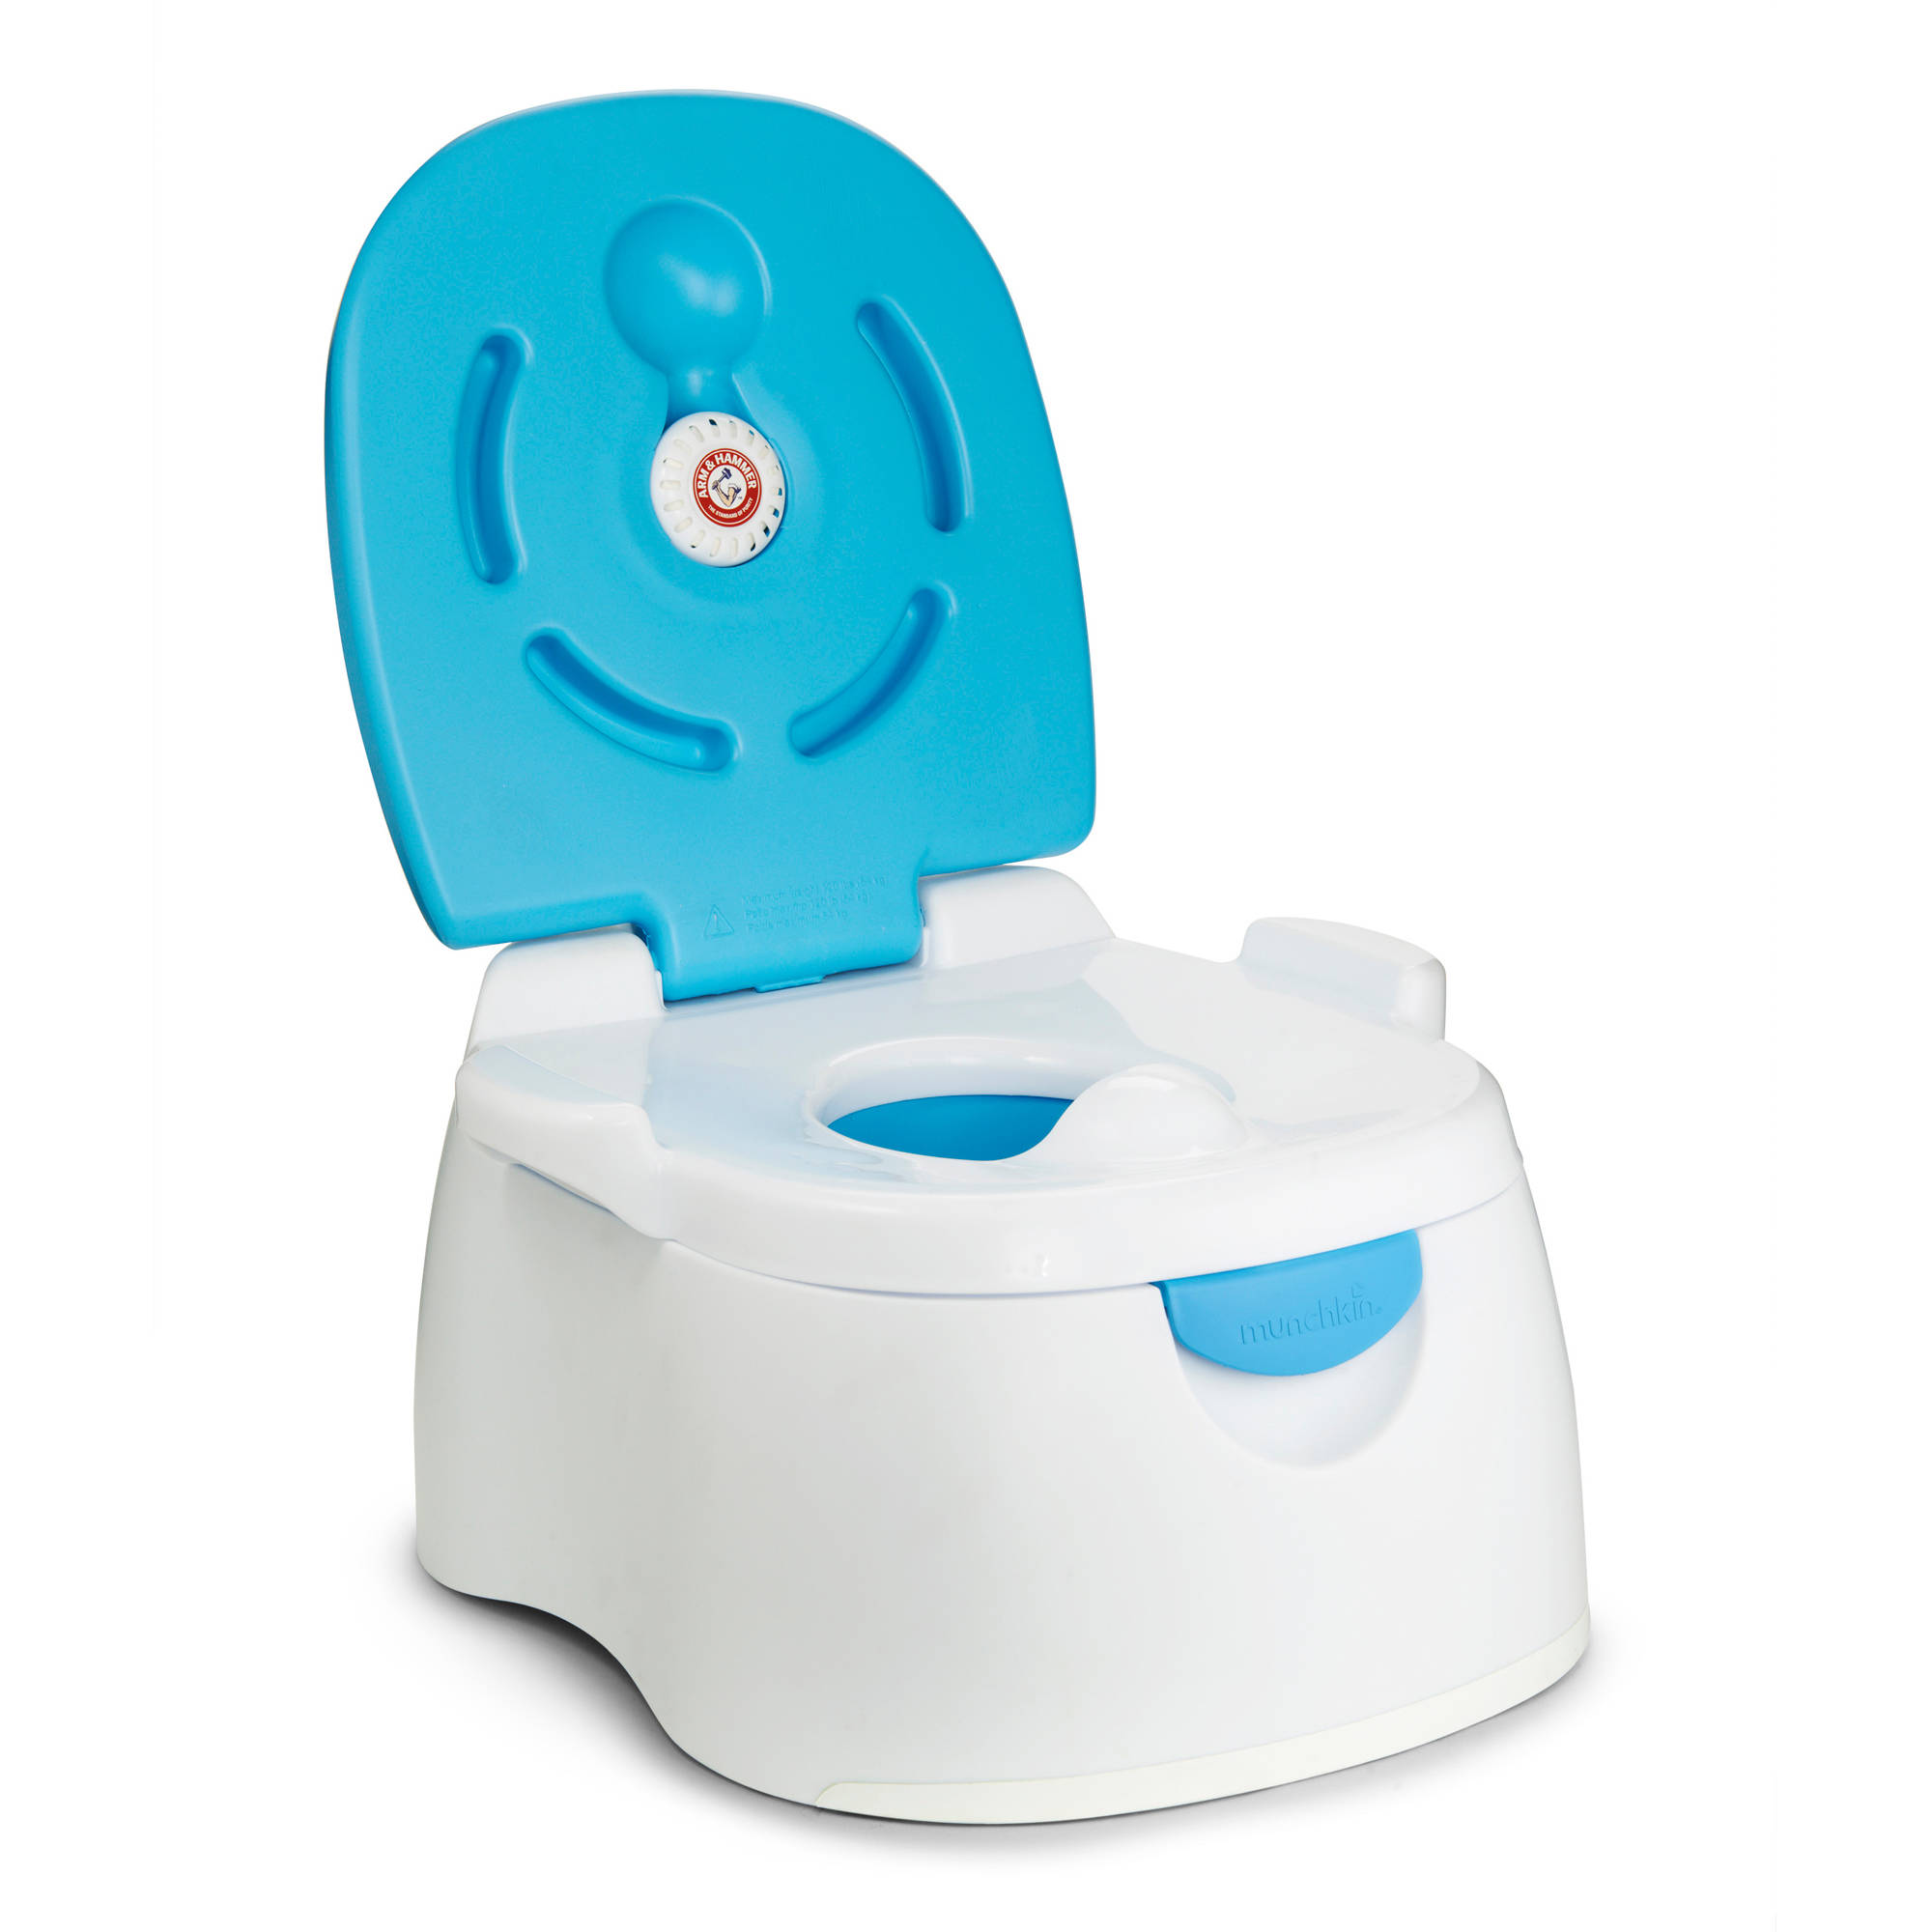 Munchkin Arm & Hammer 3-in-1 Potty Training Seat